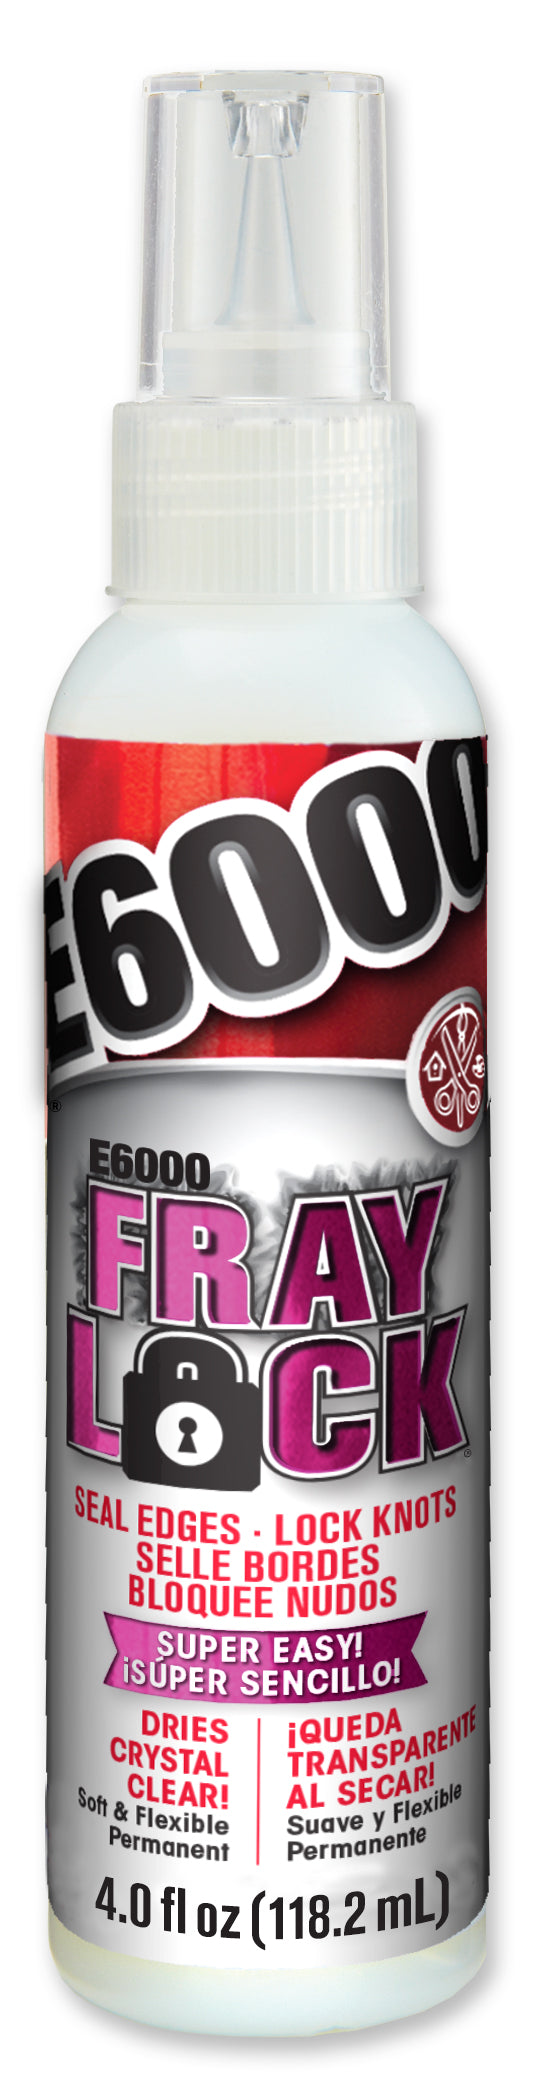 E6000 Fray Lock 4 ounce 565204C. Case of 6 tubes